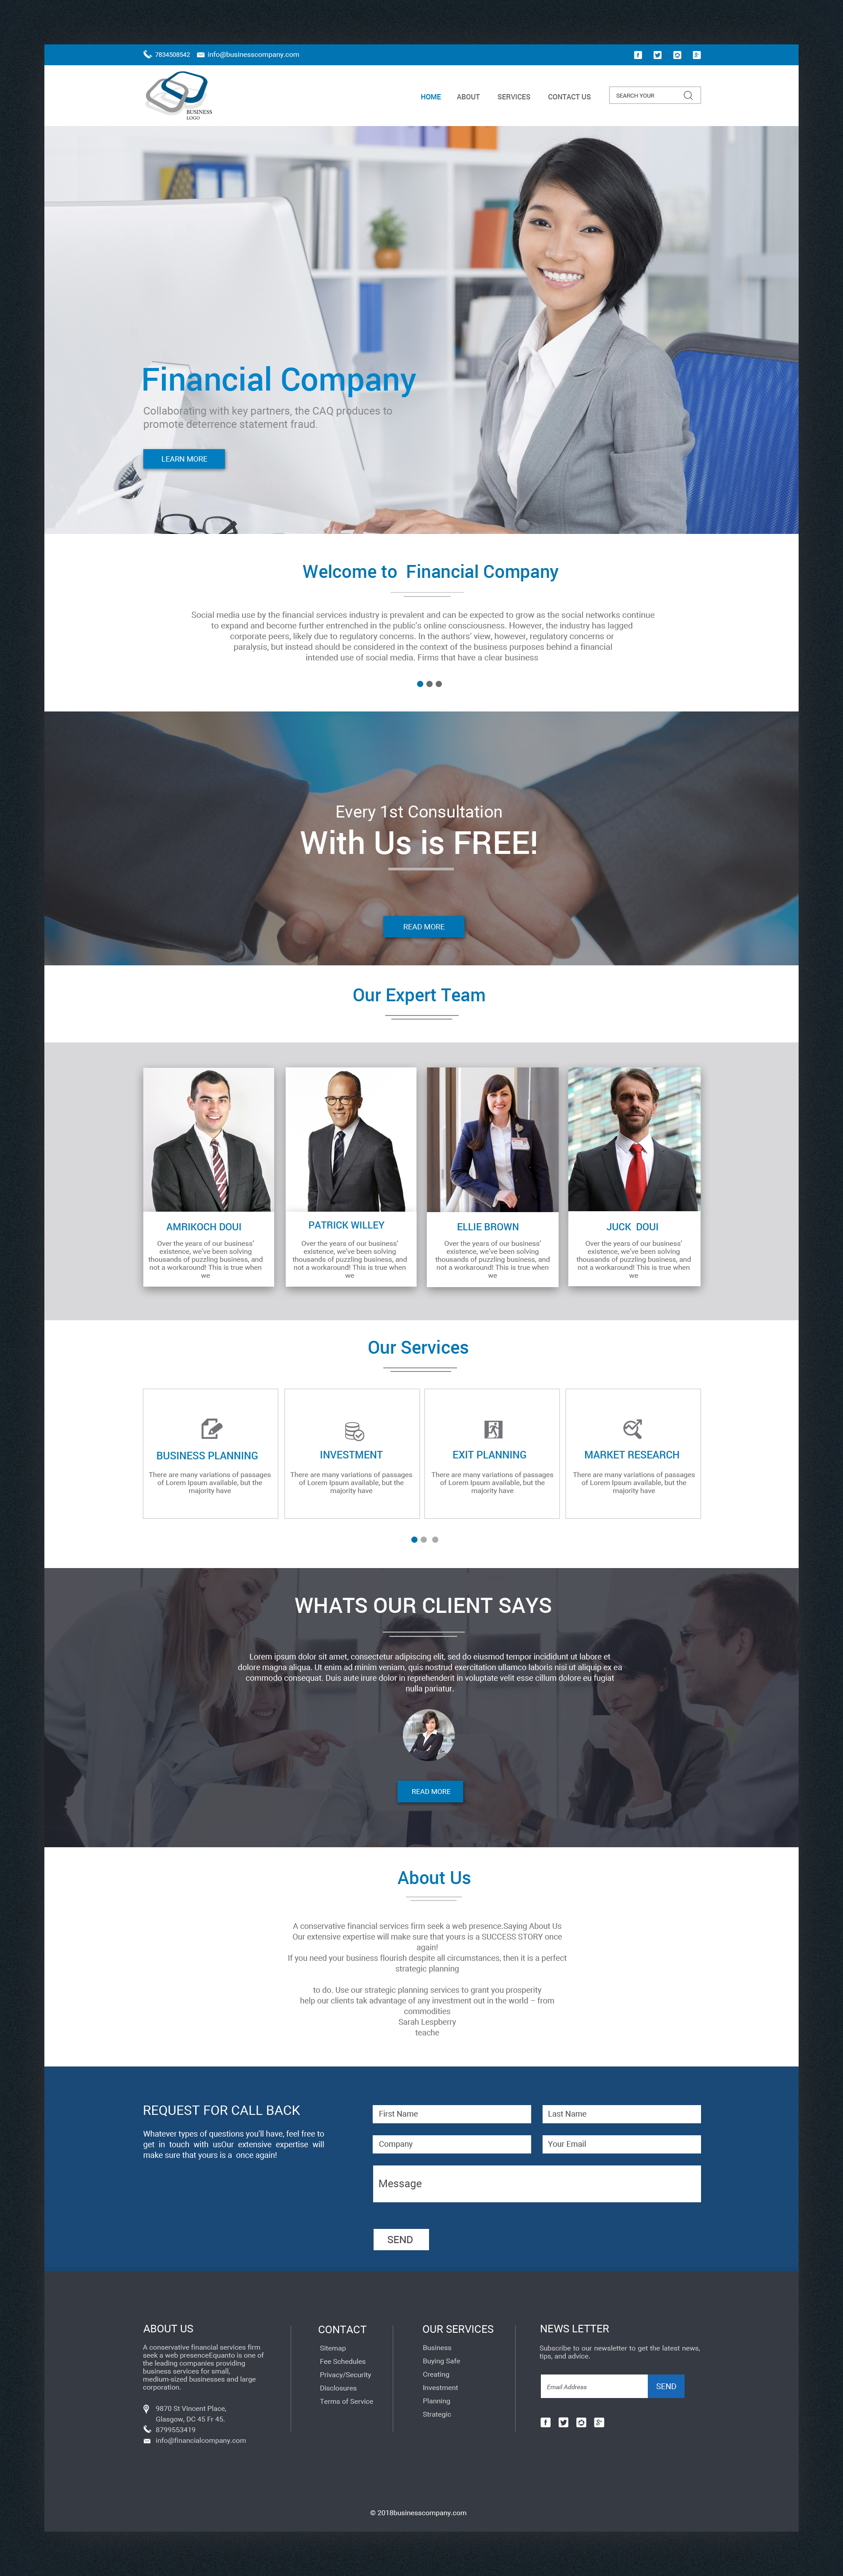 Business landing page template (2)